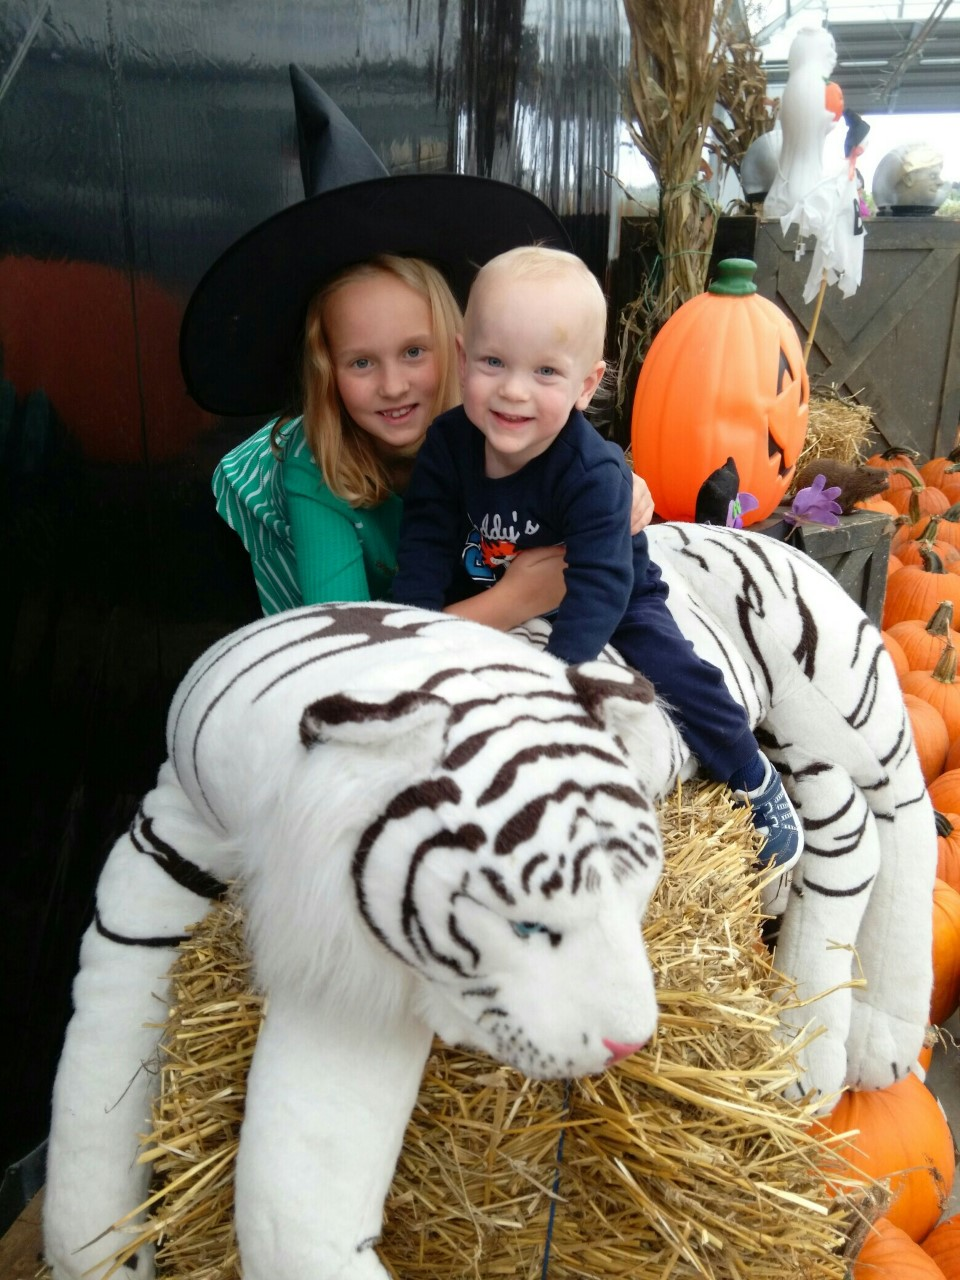 Dresser family children boy and girl playing on hay bail and stuffed tiger at halloween event